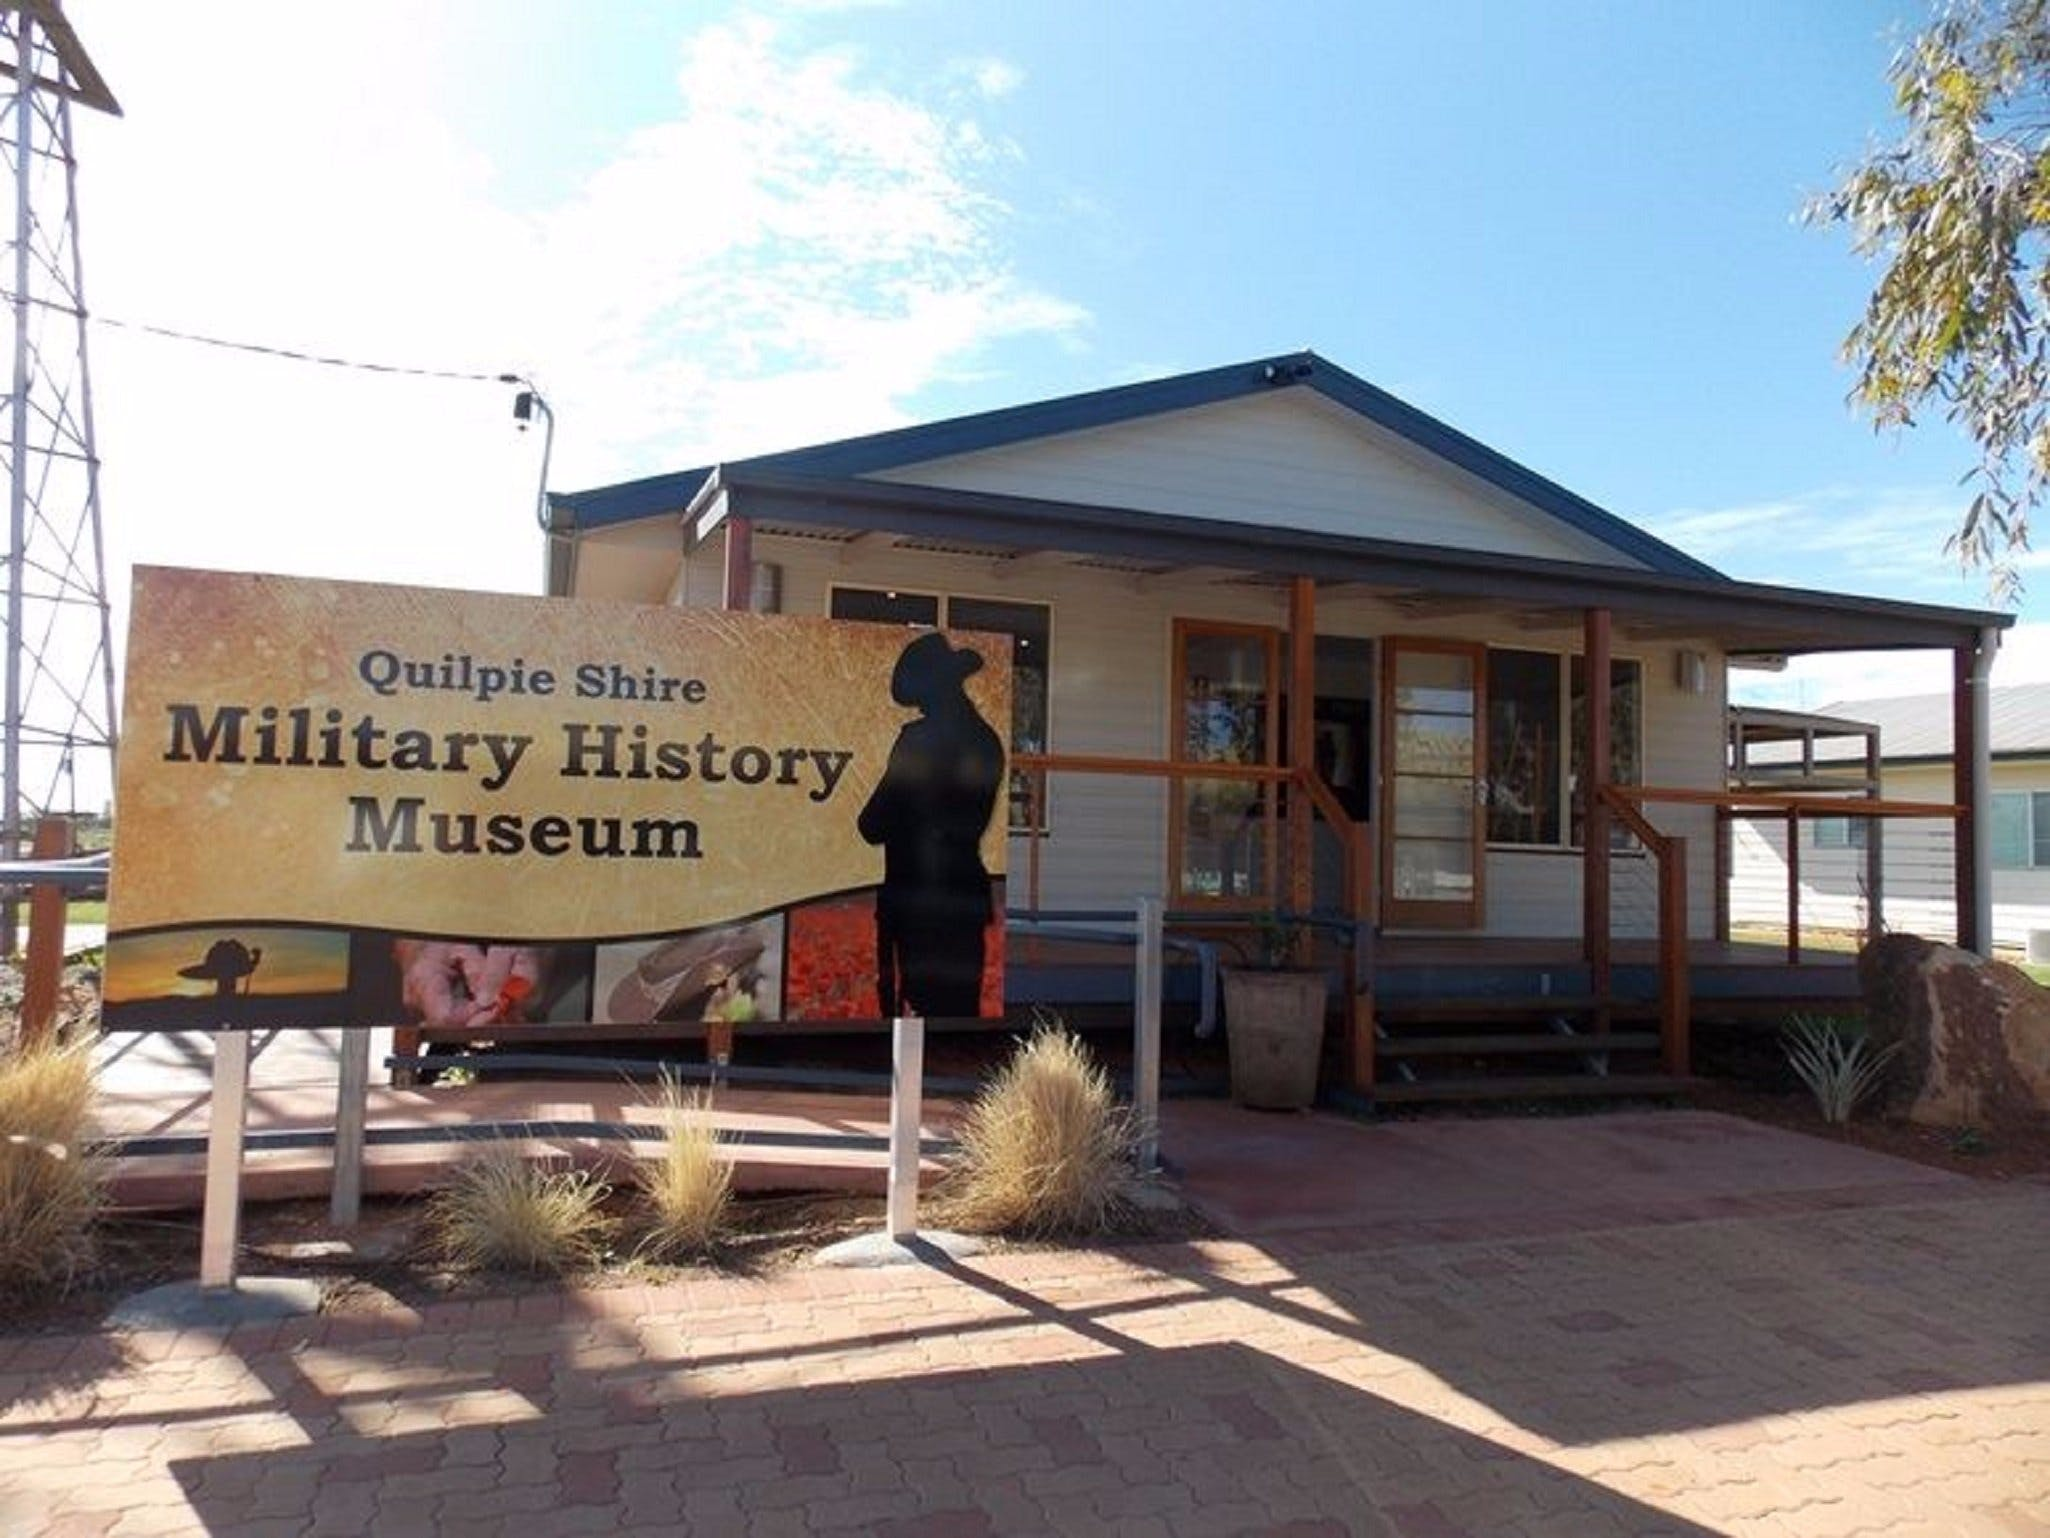 Quilpie Shire Military History Museum - eAccommodation